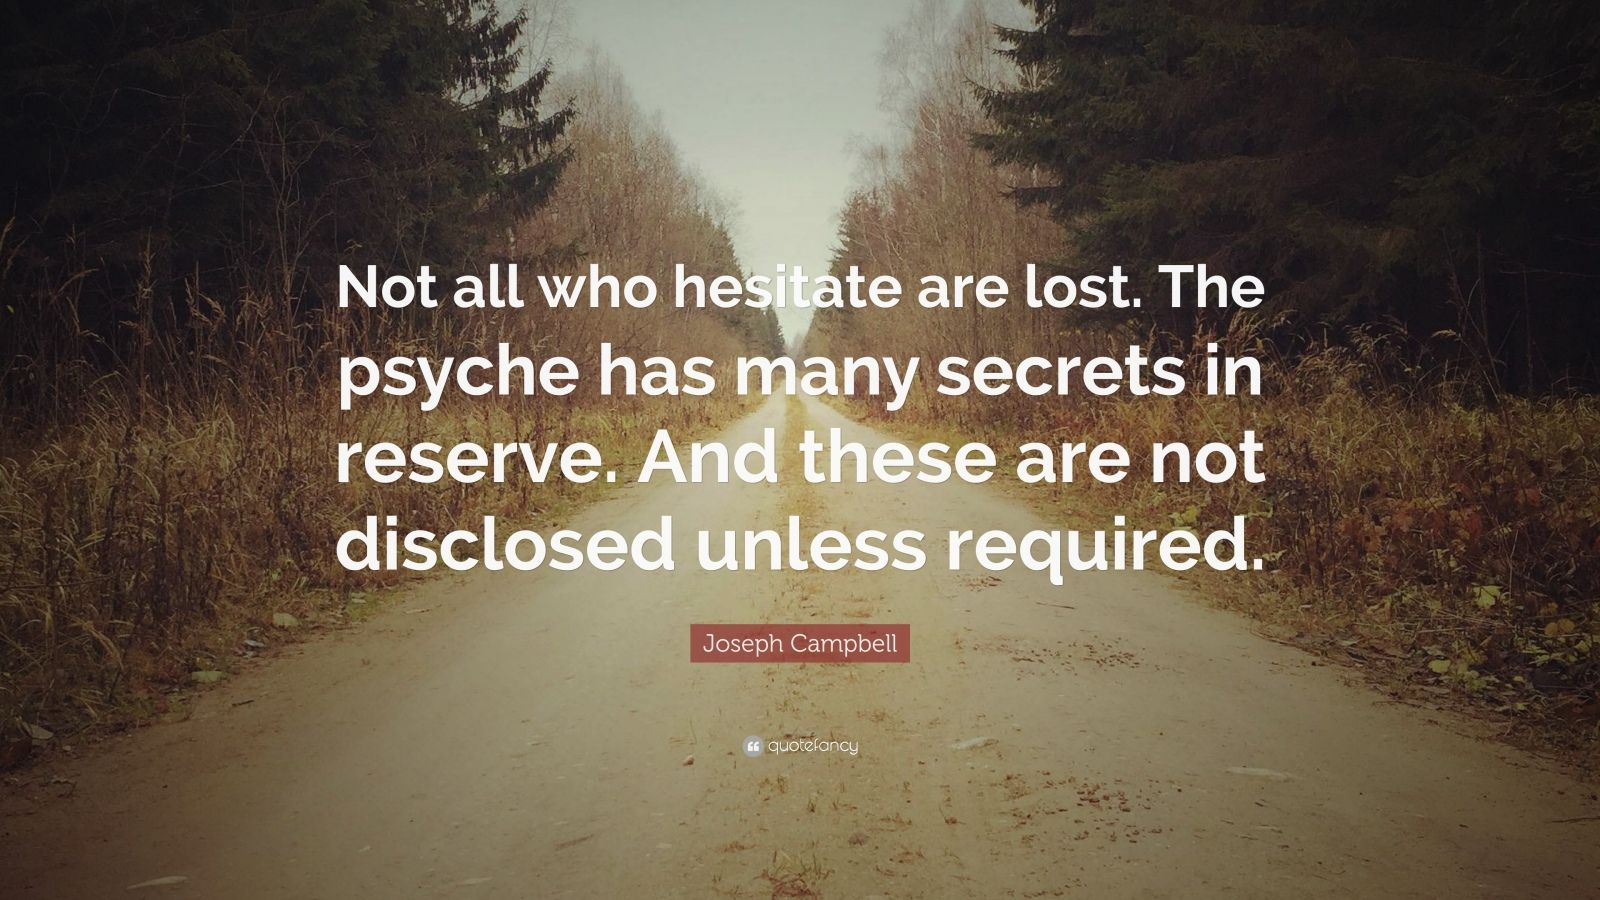 """Joseph Campbell Quote: """"Not all who hesitate are lost. The psyche has many secrets in reserve. And these are not disclosed unless required."""""""